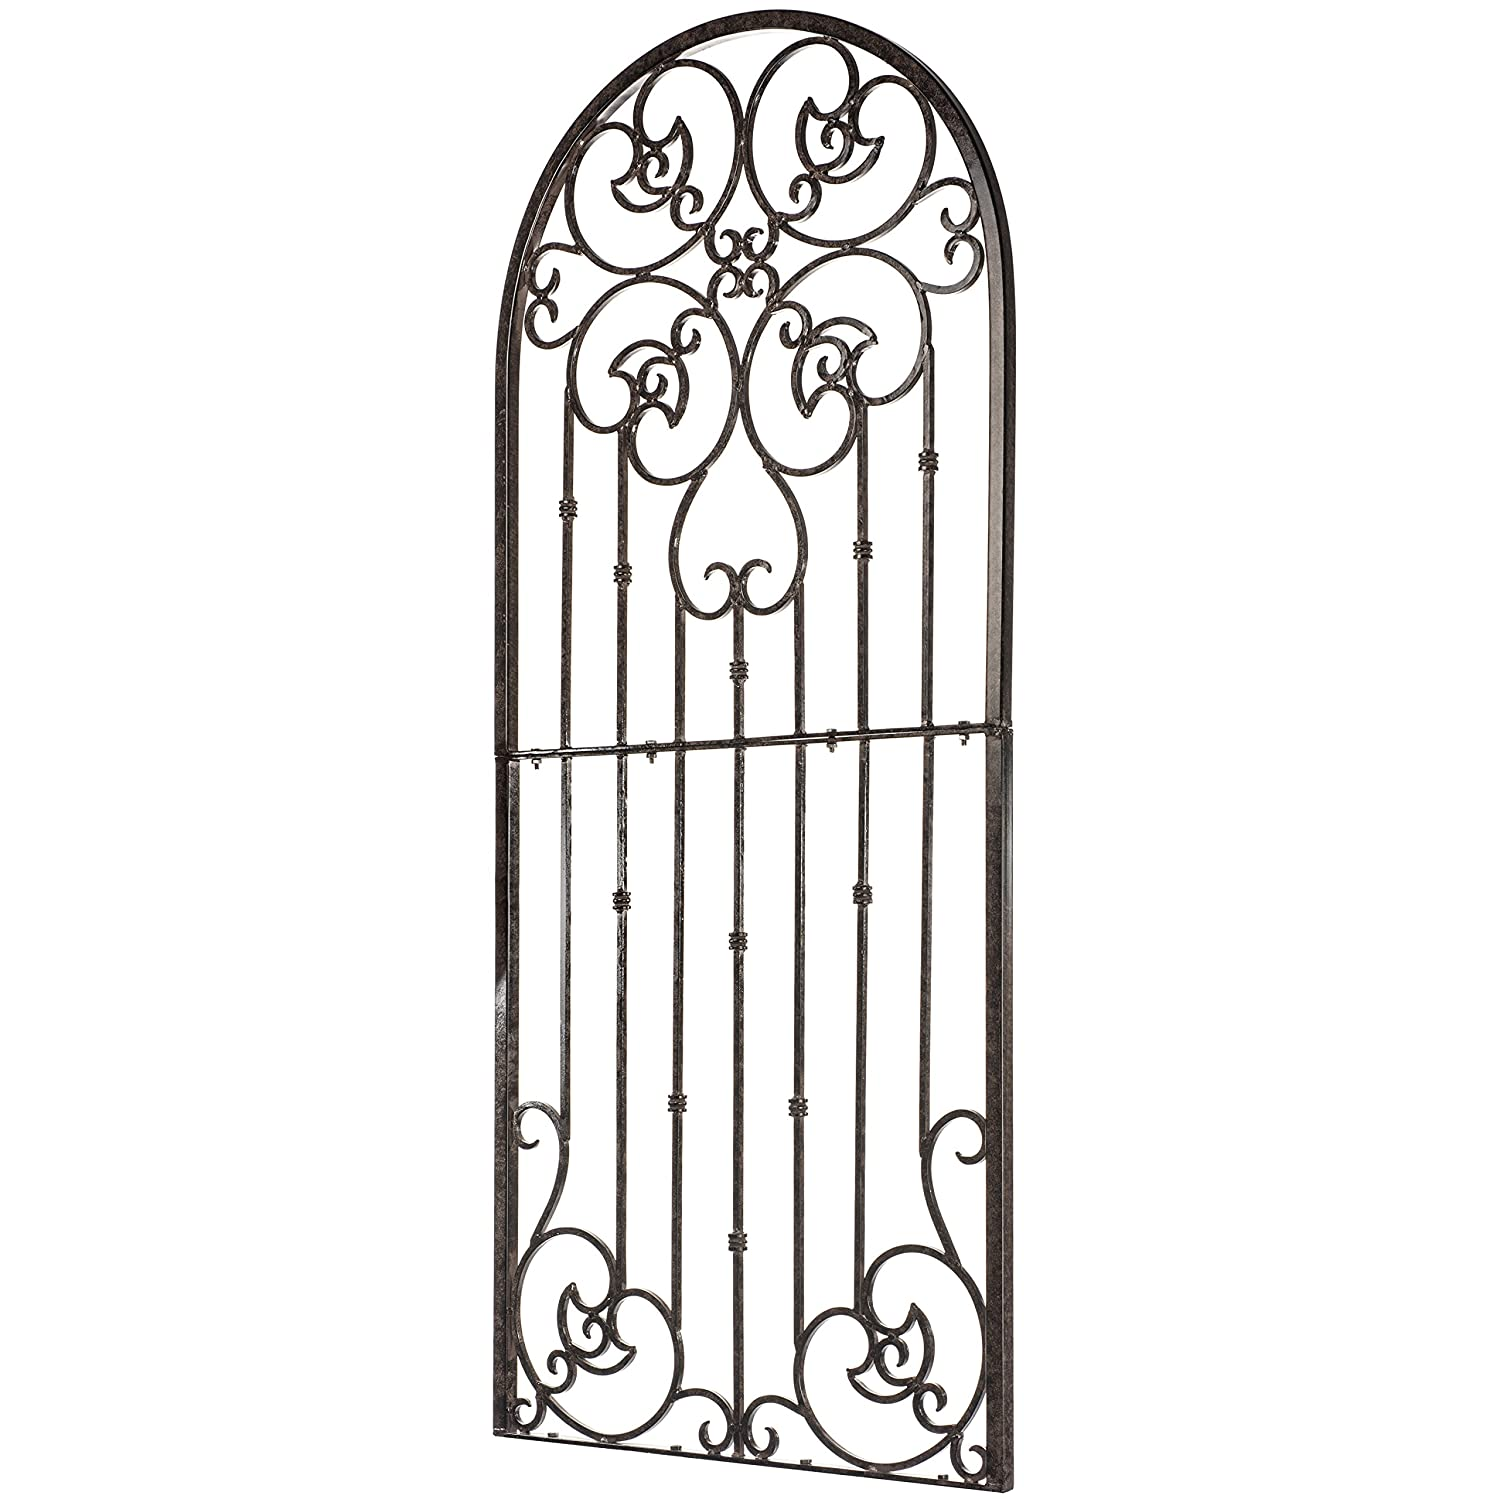 H Potter Garden Trellis for Climbing Plants Metal Wrought Iron Outdoor Wall Panel for Vines Flowers